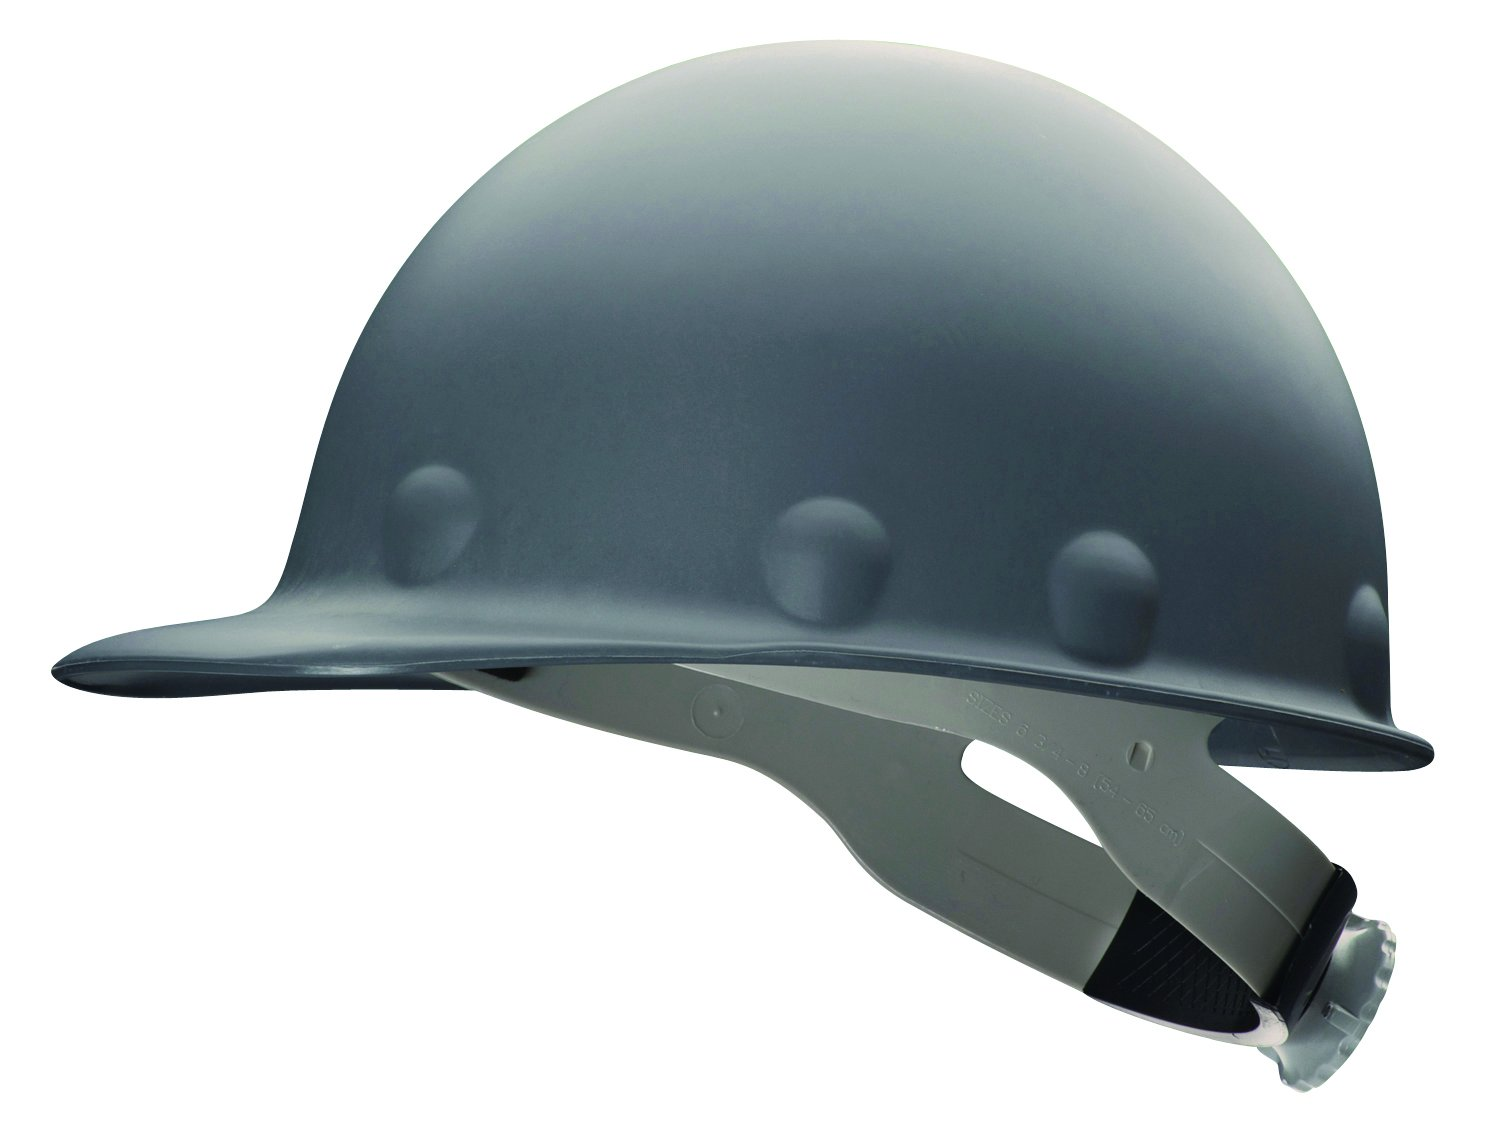 Fibre-Metal Hard Hat P2RWGY Hard Hat with Ratchet Suspension, Fiber-Metal Injection, Molded Fiberglass, One Size, Grey